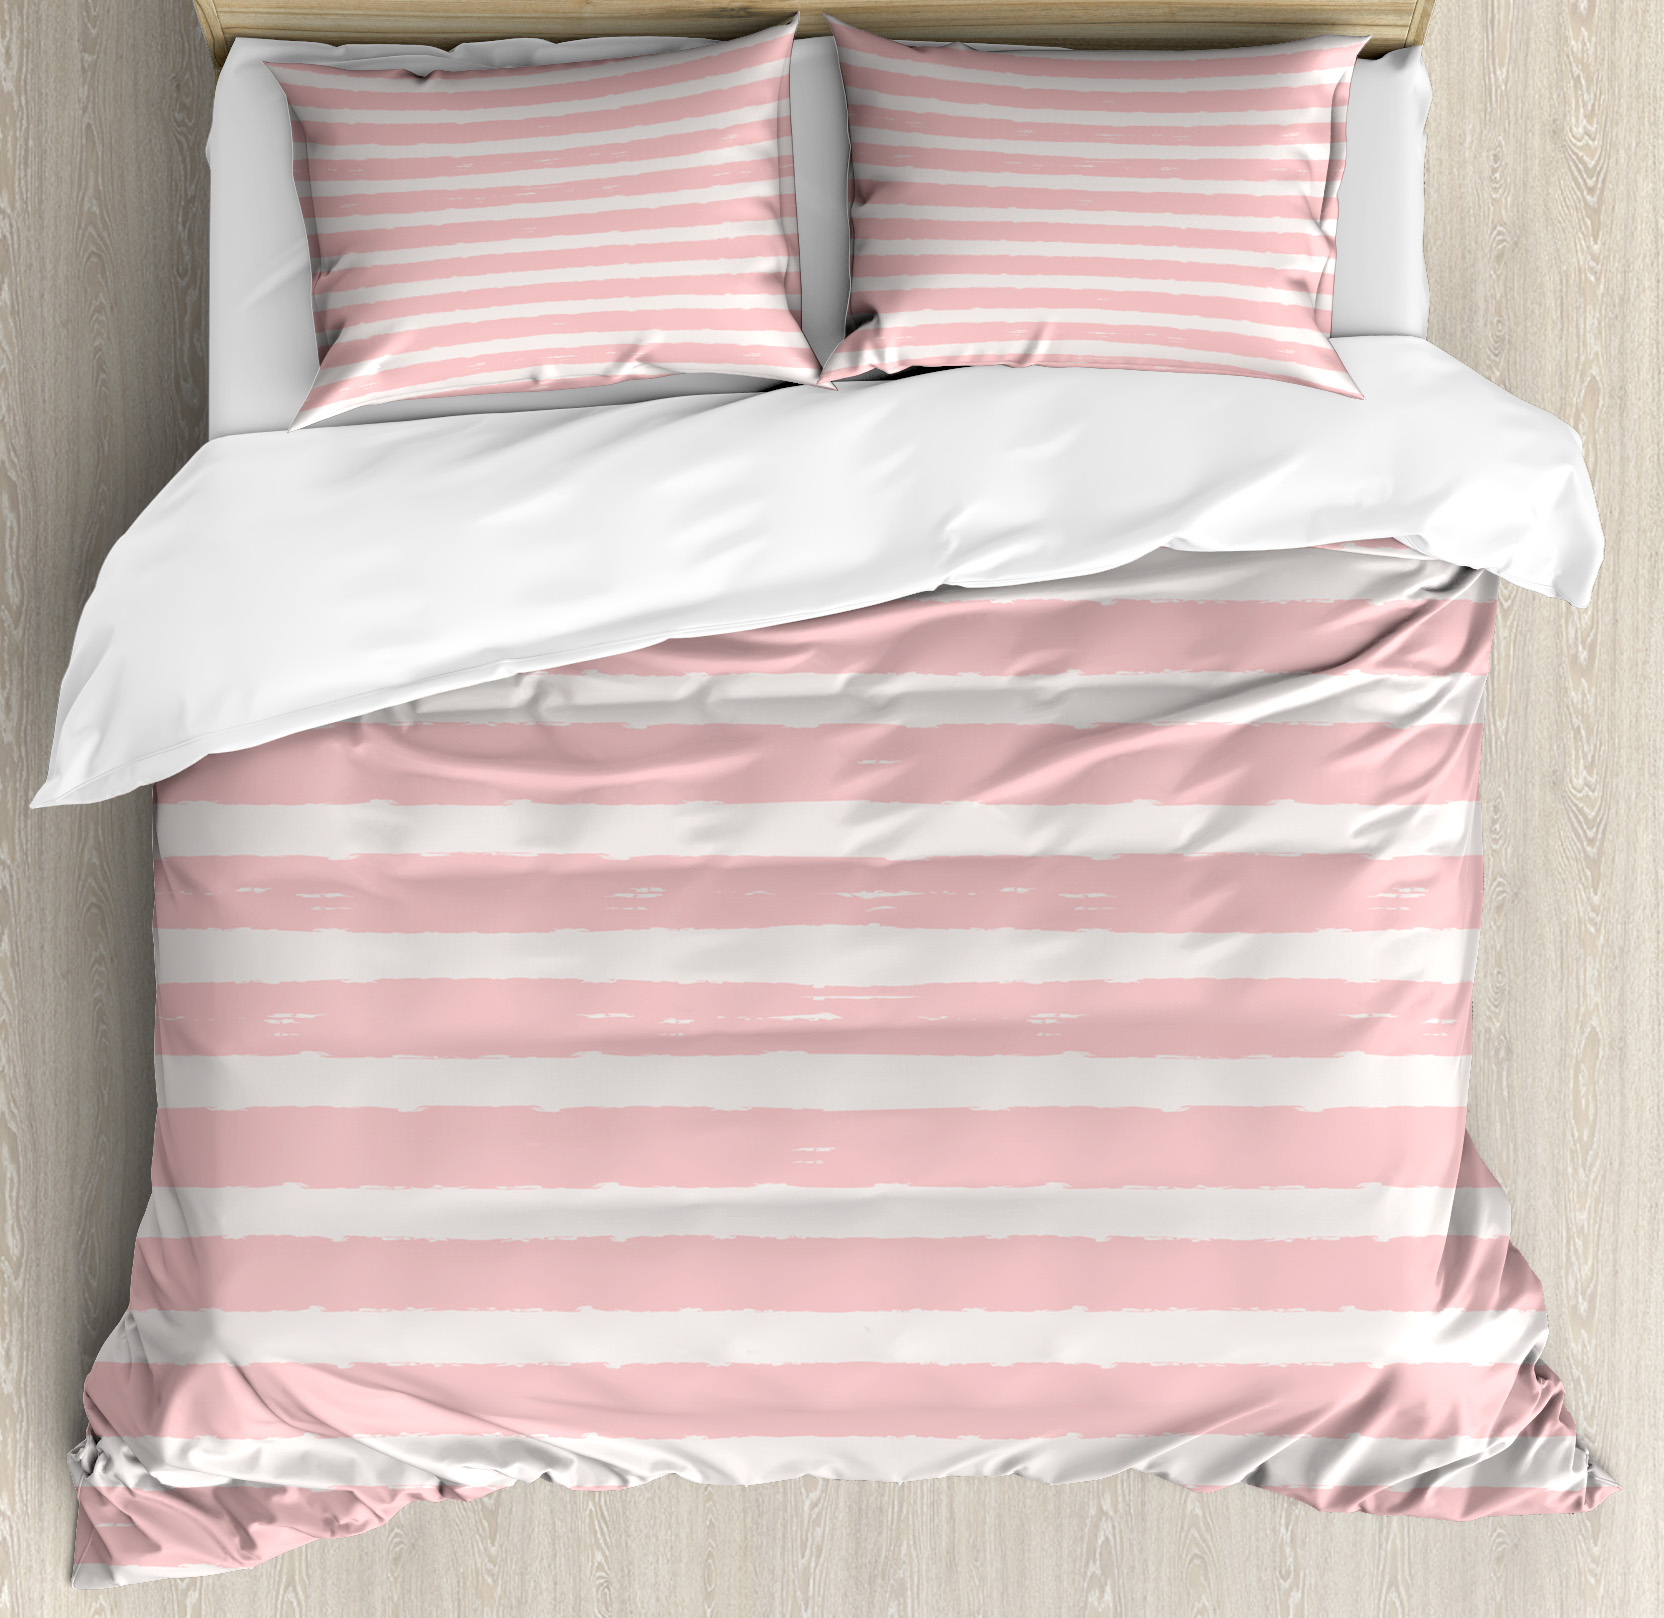 Kids Queen Size Duvet Cover Set, Paint Brushstrokes in Horizontal Direction Pastel Color Pattern for Girls Kids, Decorative 3 Piece Bedding Set with 2 Pillow Shams, Blush Baby Pink, by Ambesonne